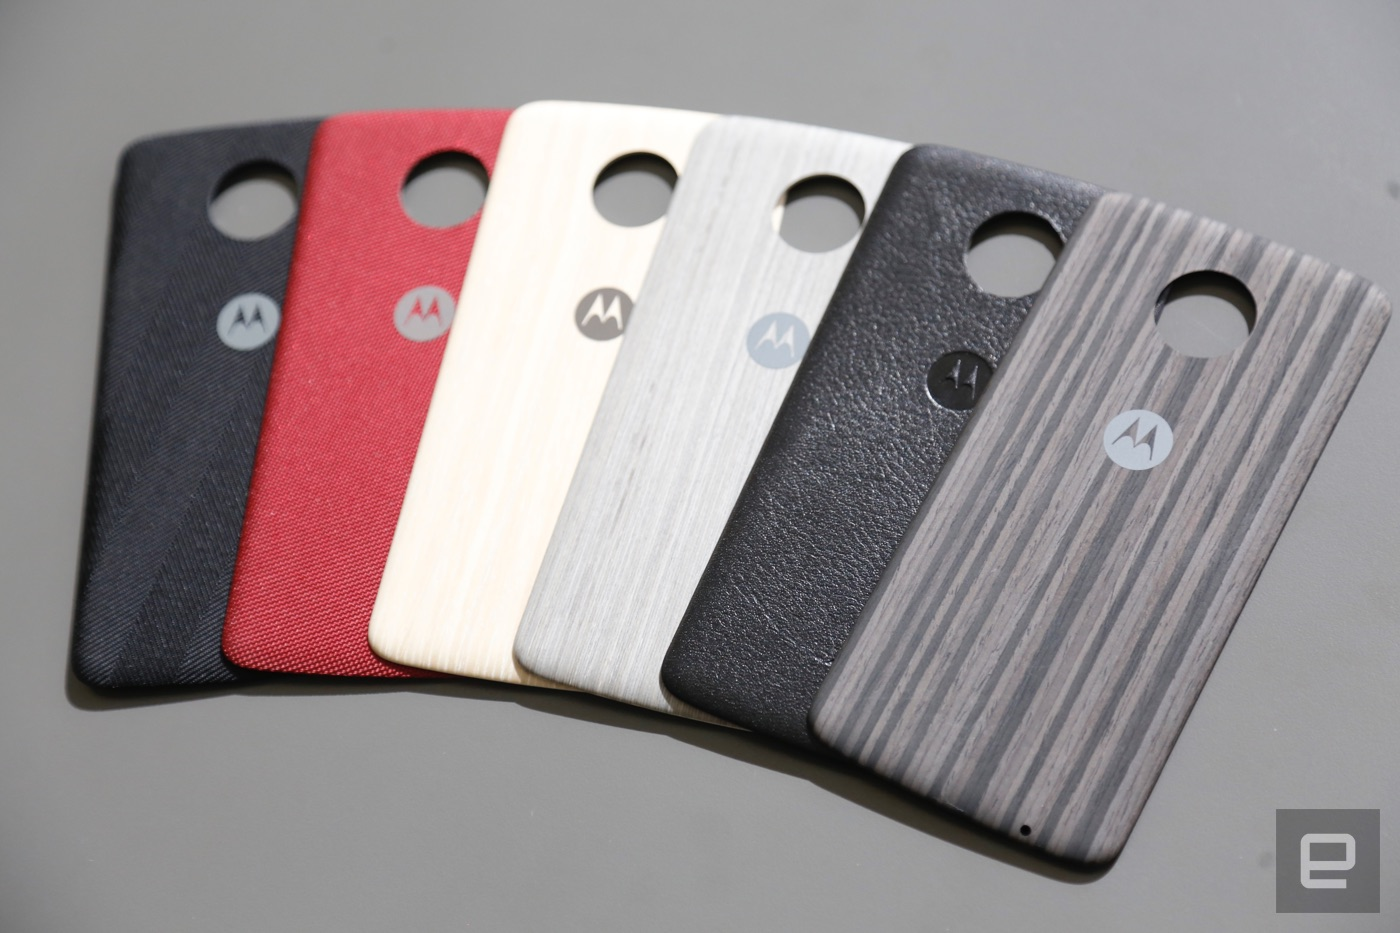 The Moto Z and Z Force are as controversial as they are